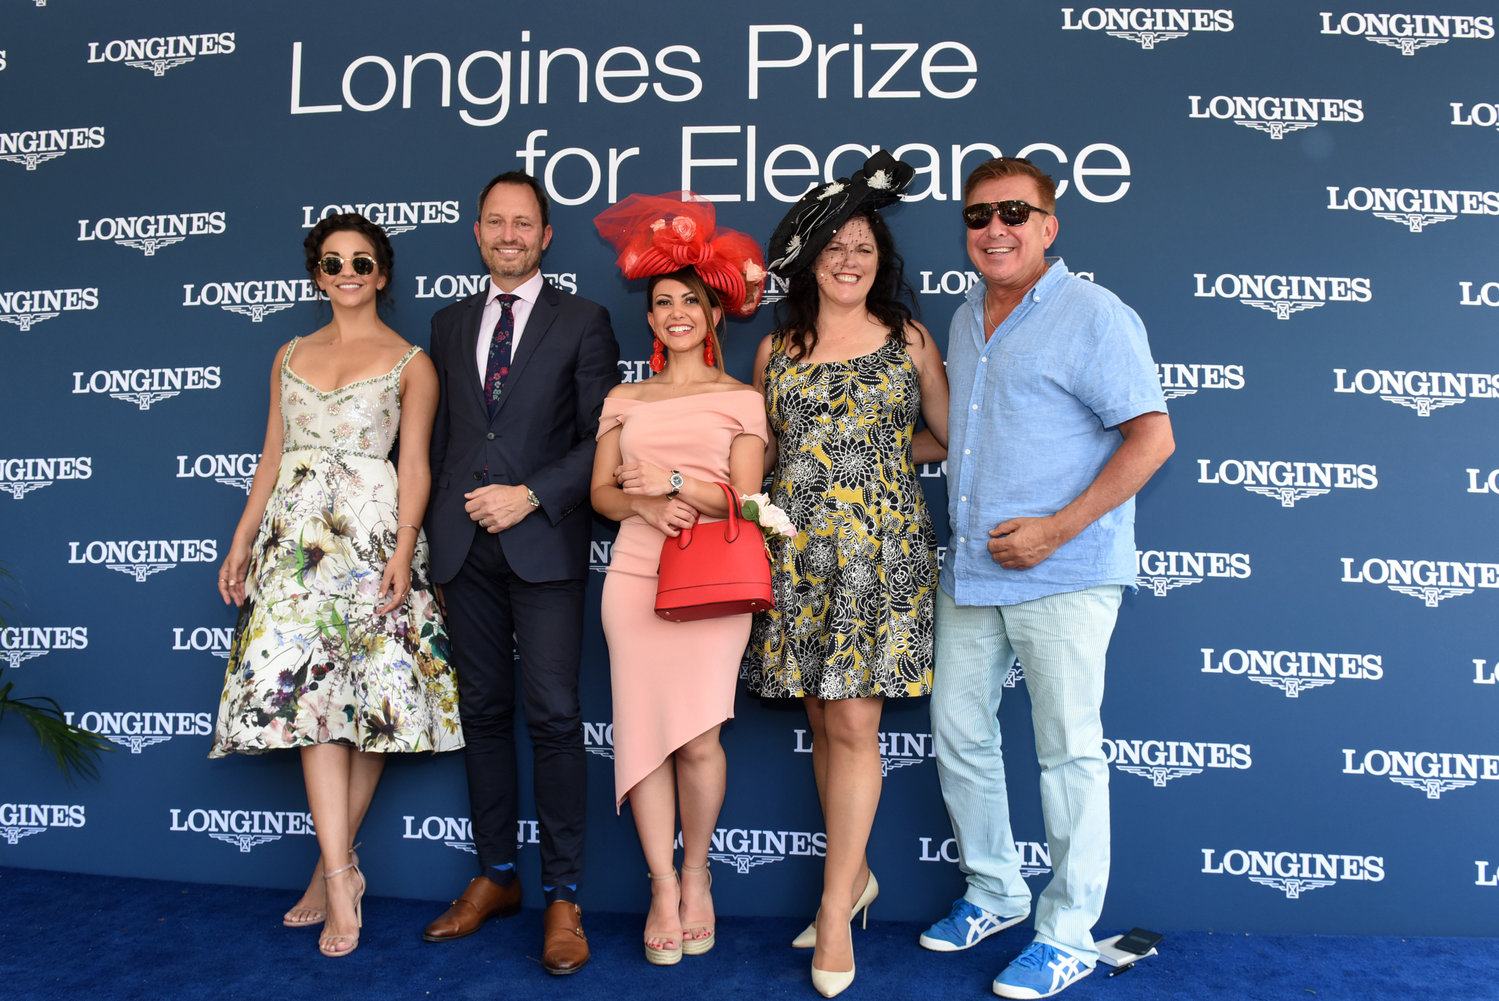 Elham Ayati, center, of New York, celebrates after winning the Longines Prize for Elegance fashion contest, with judges, from left to right, actress Ana Villafane, Pascal Savoy, Longines US Brand President, Christine A. Moore, of Christine A. Moore Millinery, and Forbes fashion editor Joseph DeAcetis.